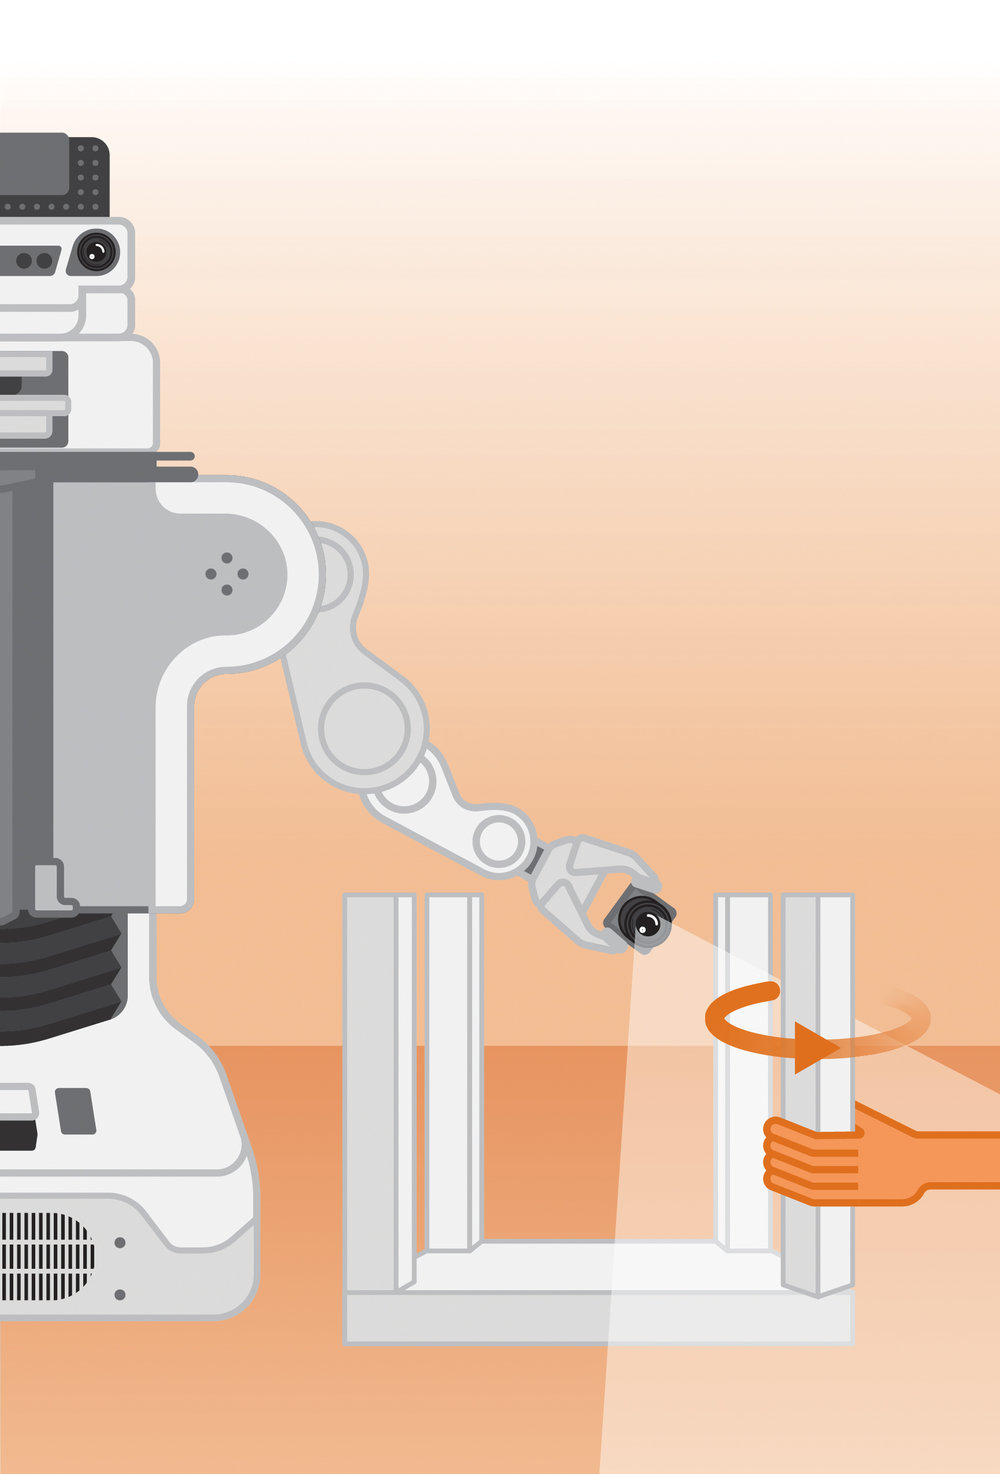 Show and tell.   Demonstrate the task as the robot watches via camera and listens to verbal instructions. Then, the robot will try to copy. You provide feedback until the robot masters the task.